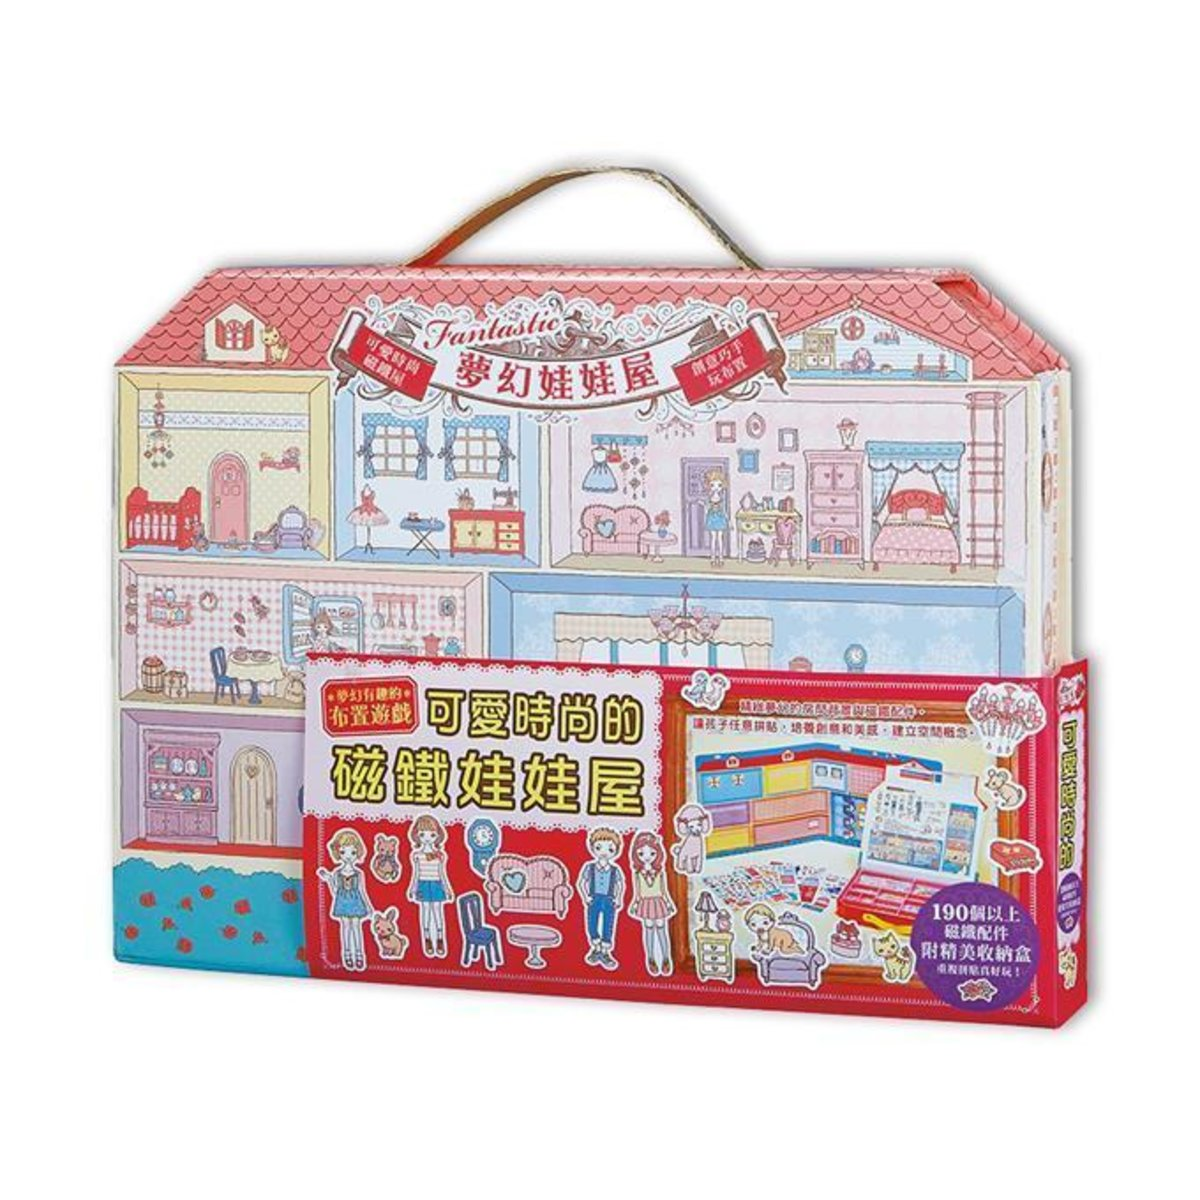 Cute stylish new version of the magnet dollhouse